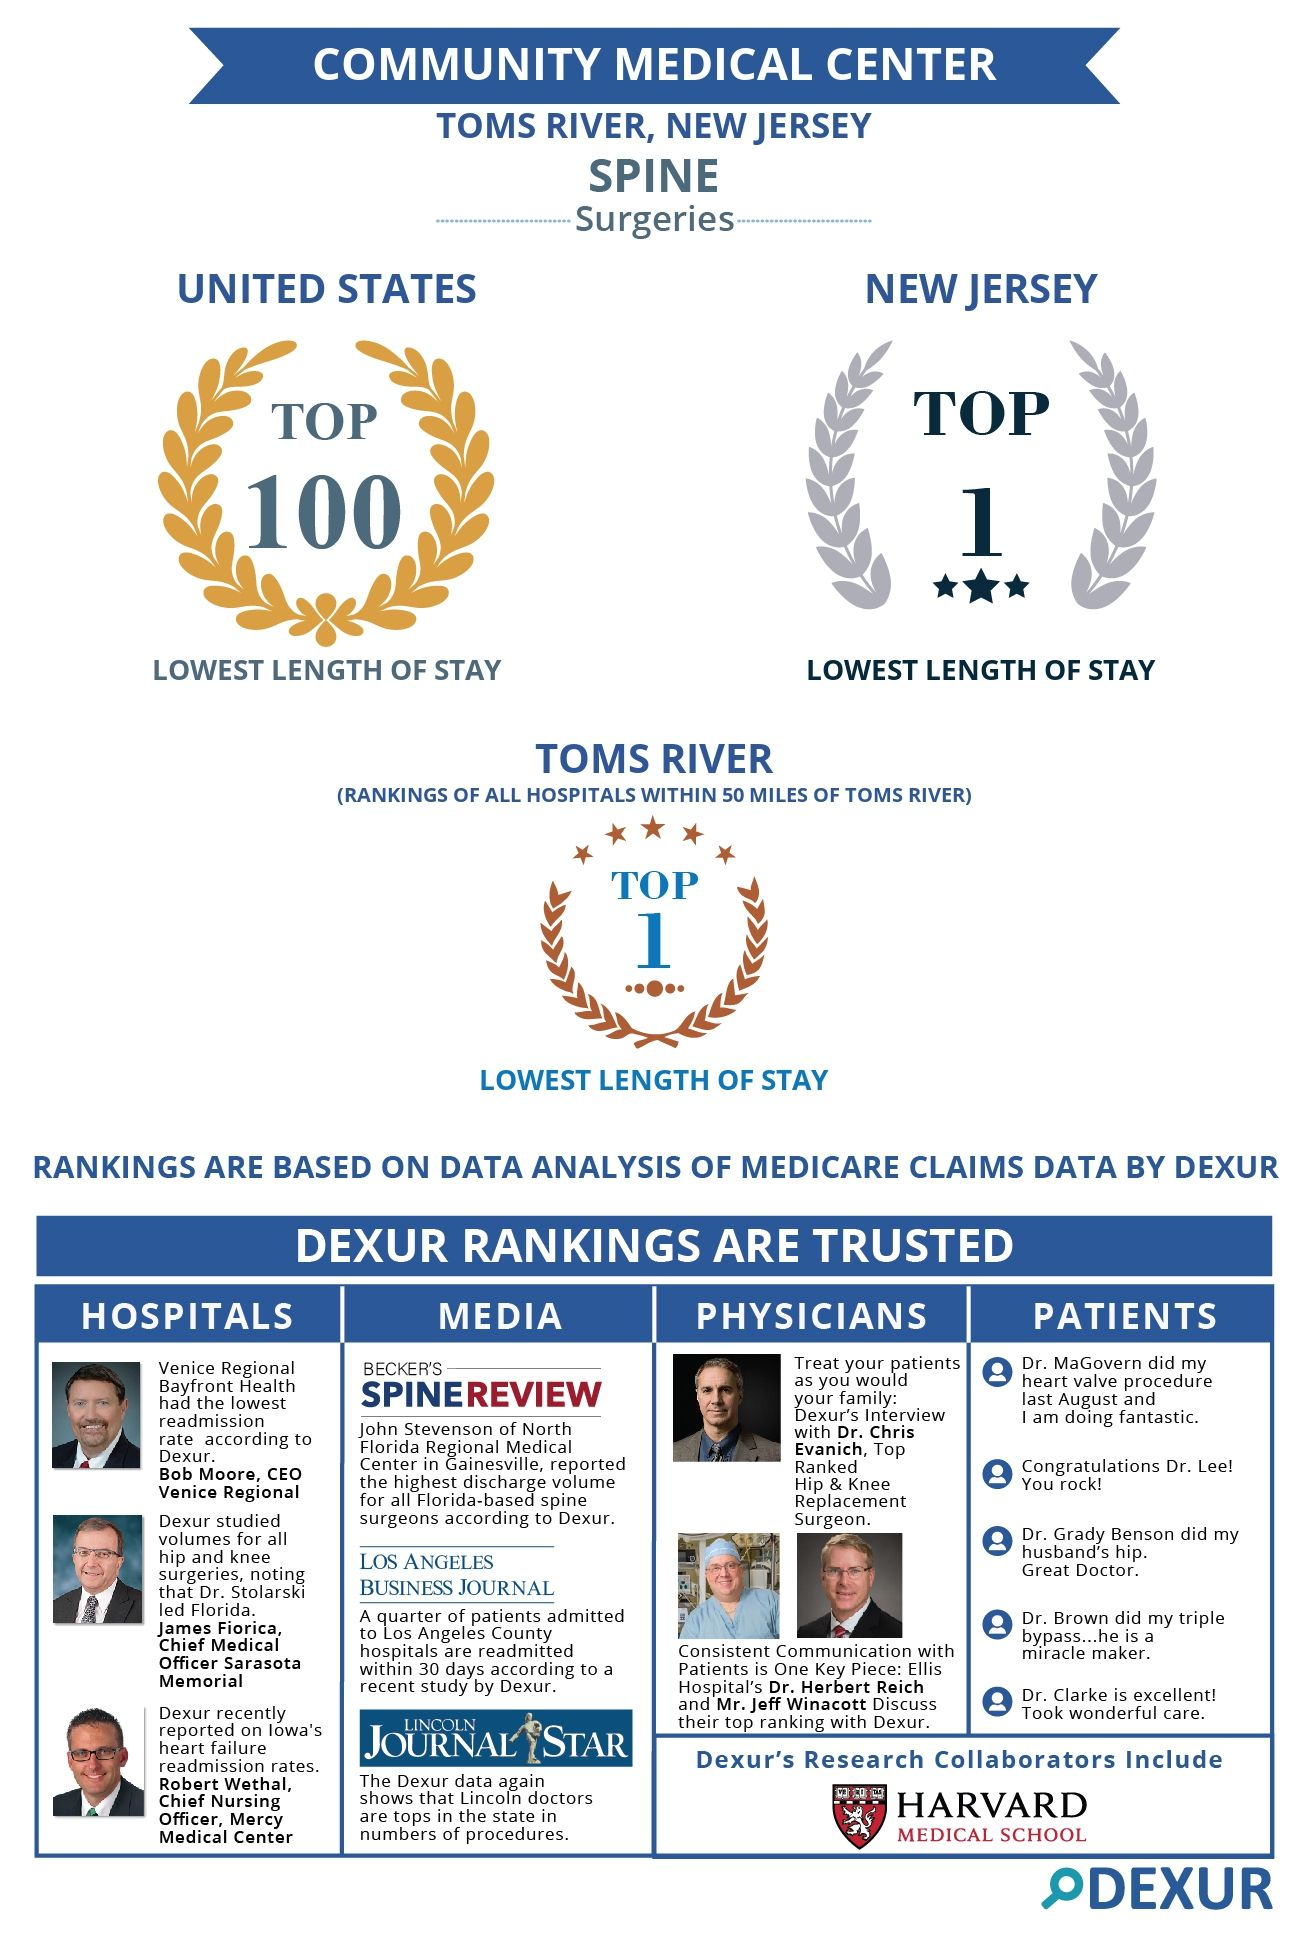 Community Medical Center is among the top ranked Hospitals